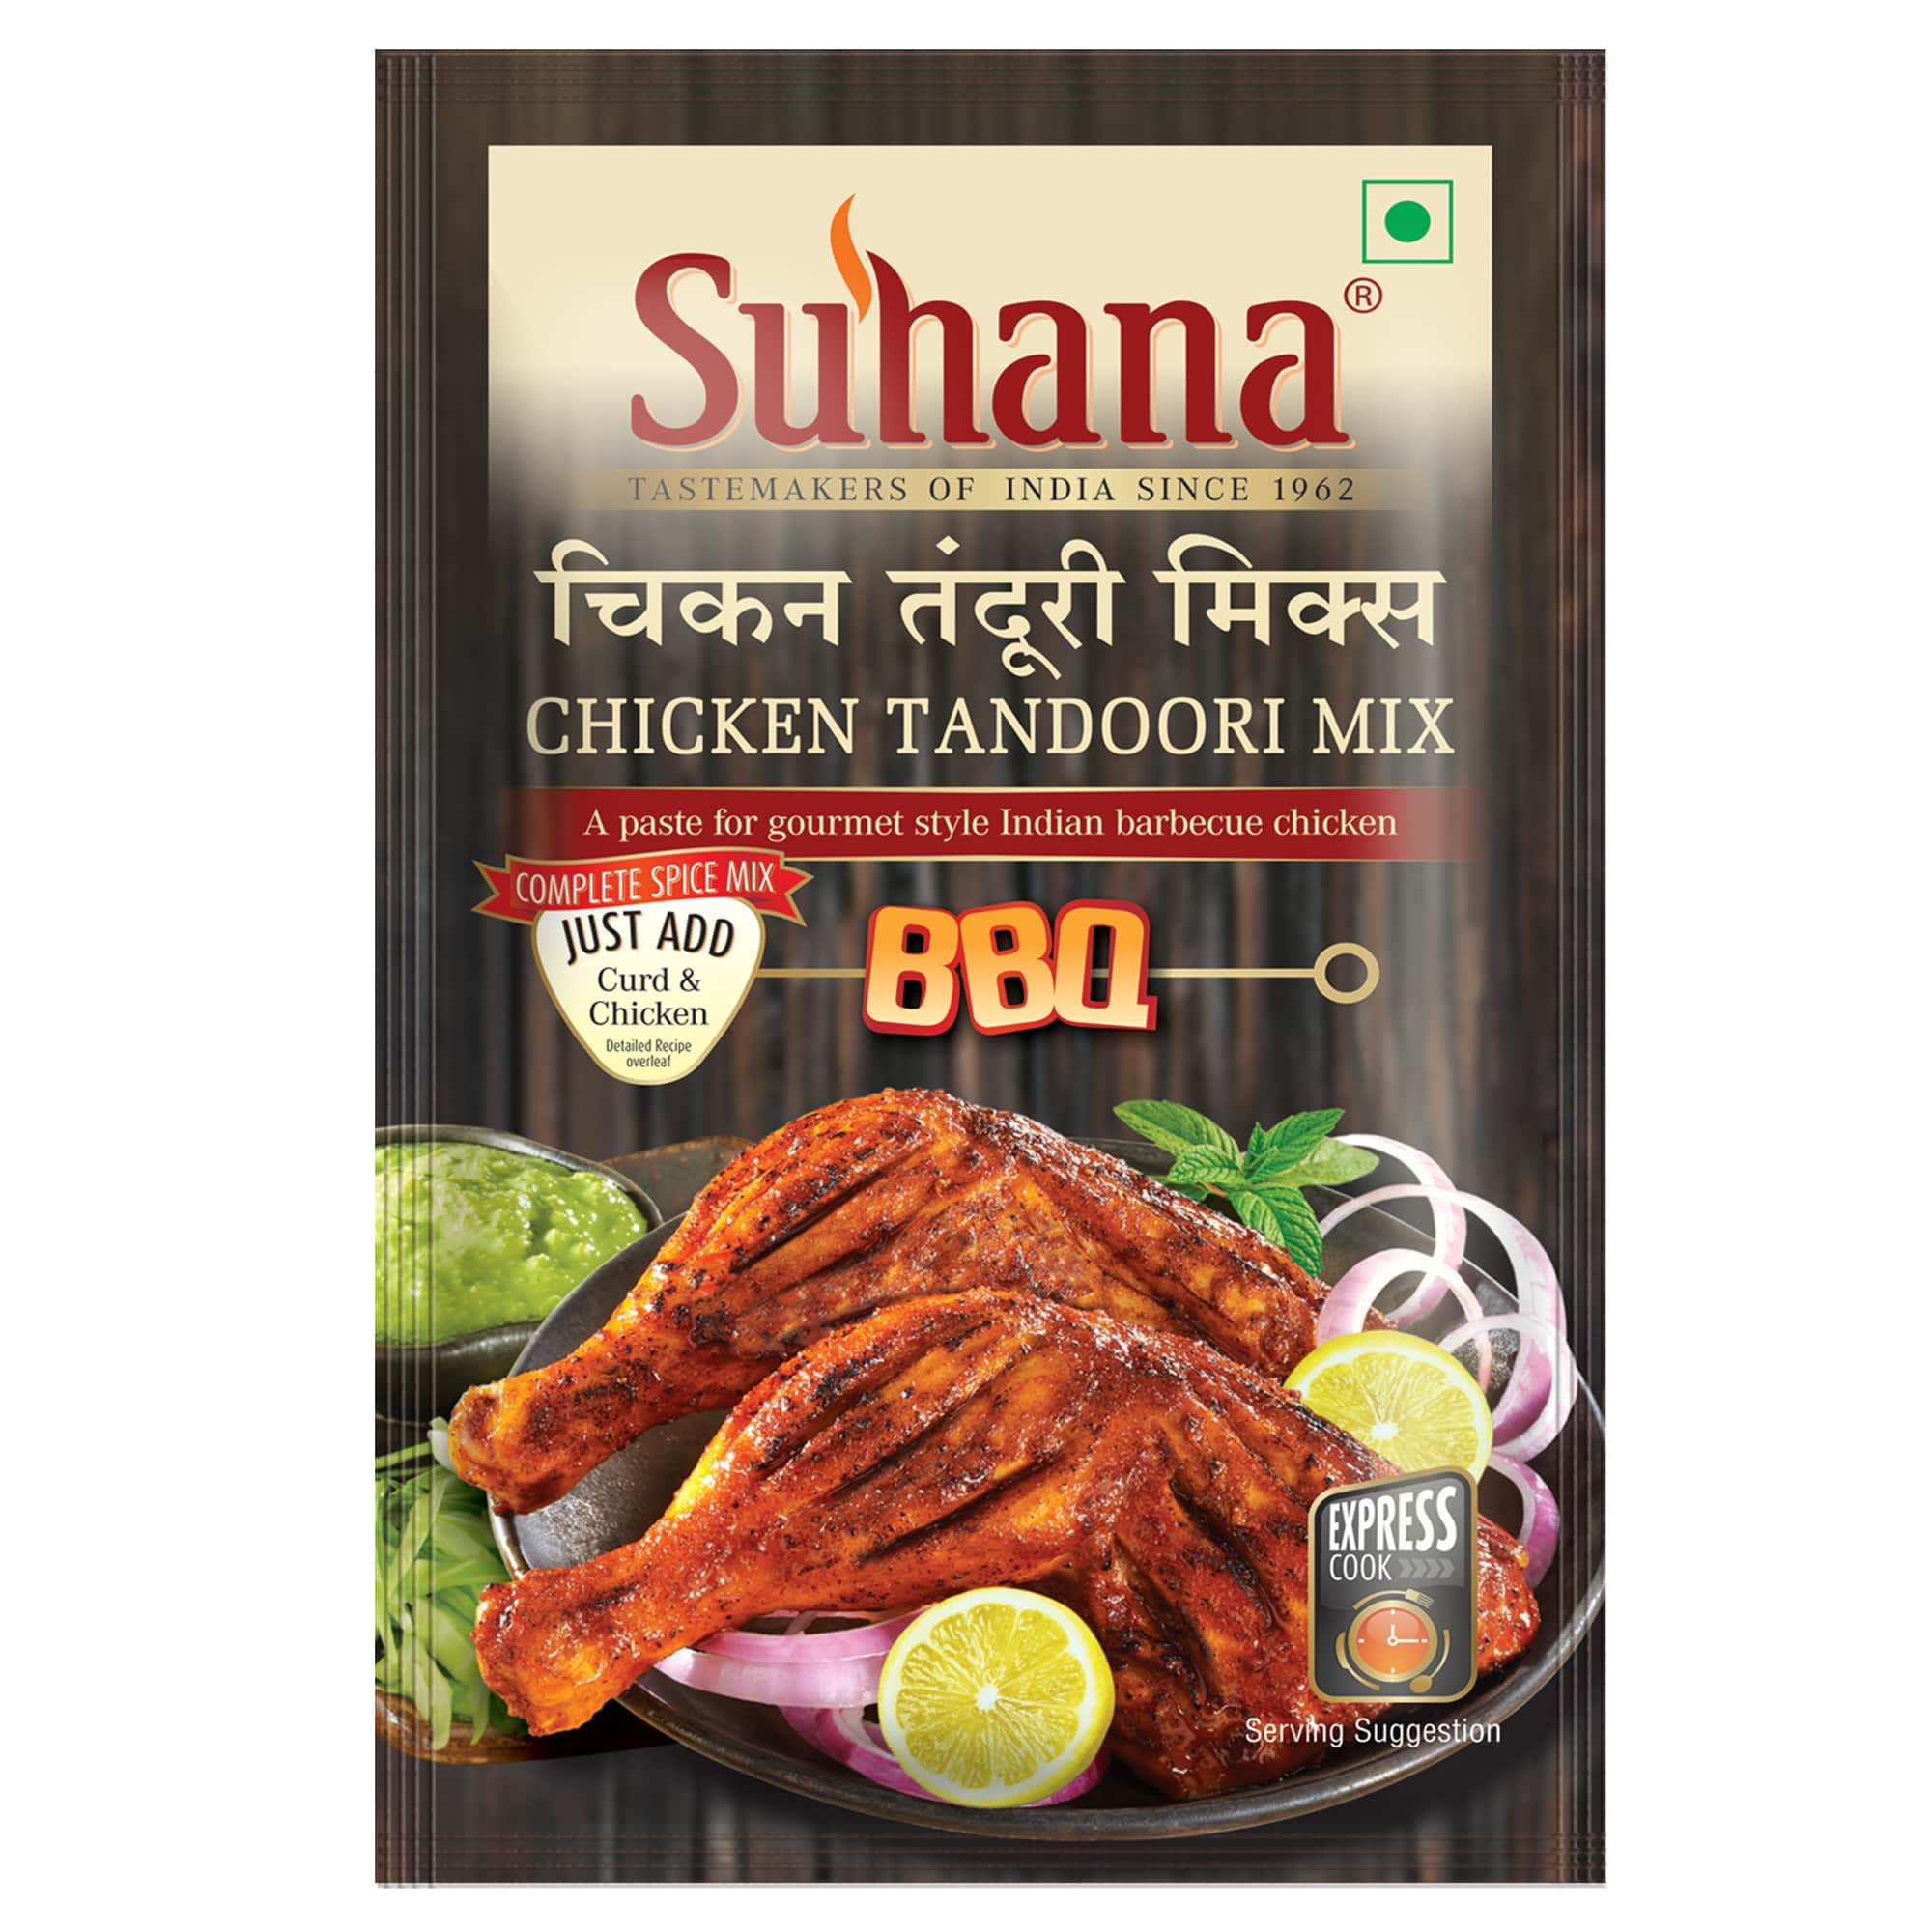 Suhana Chicken Tandoori (Paste) Spice Mix 100 g Pouch